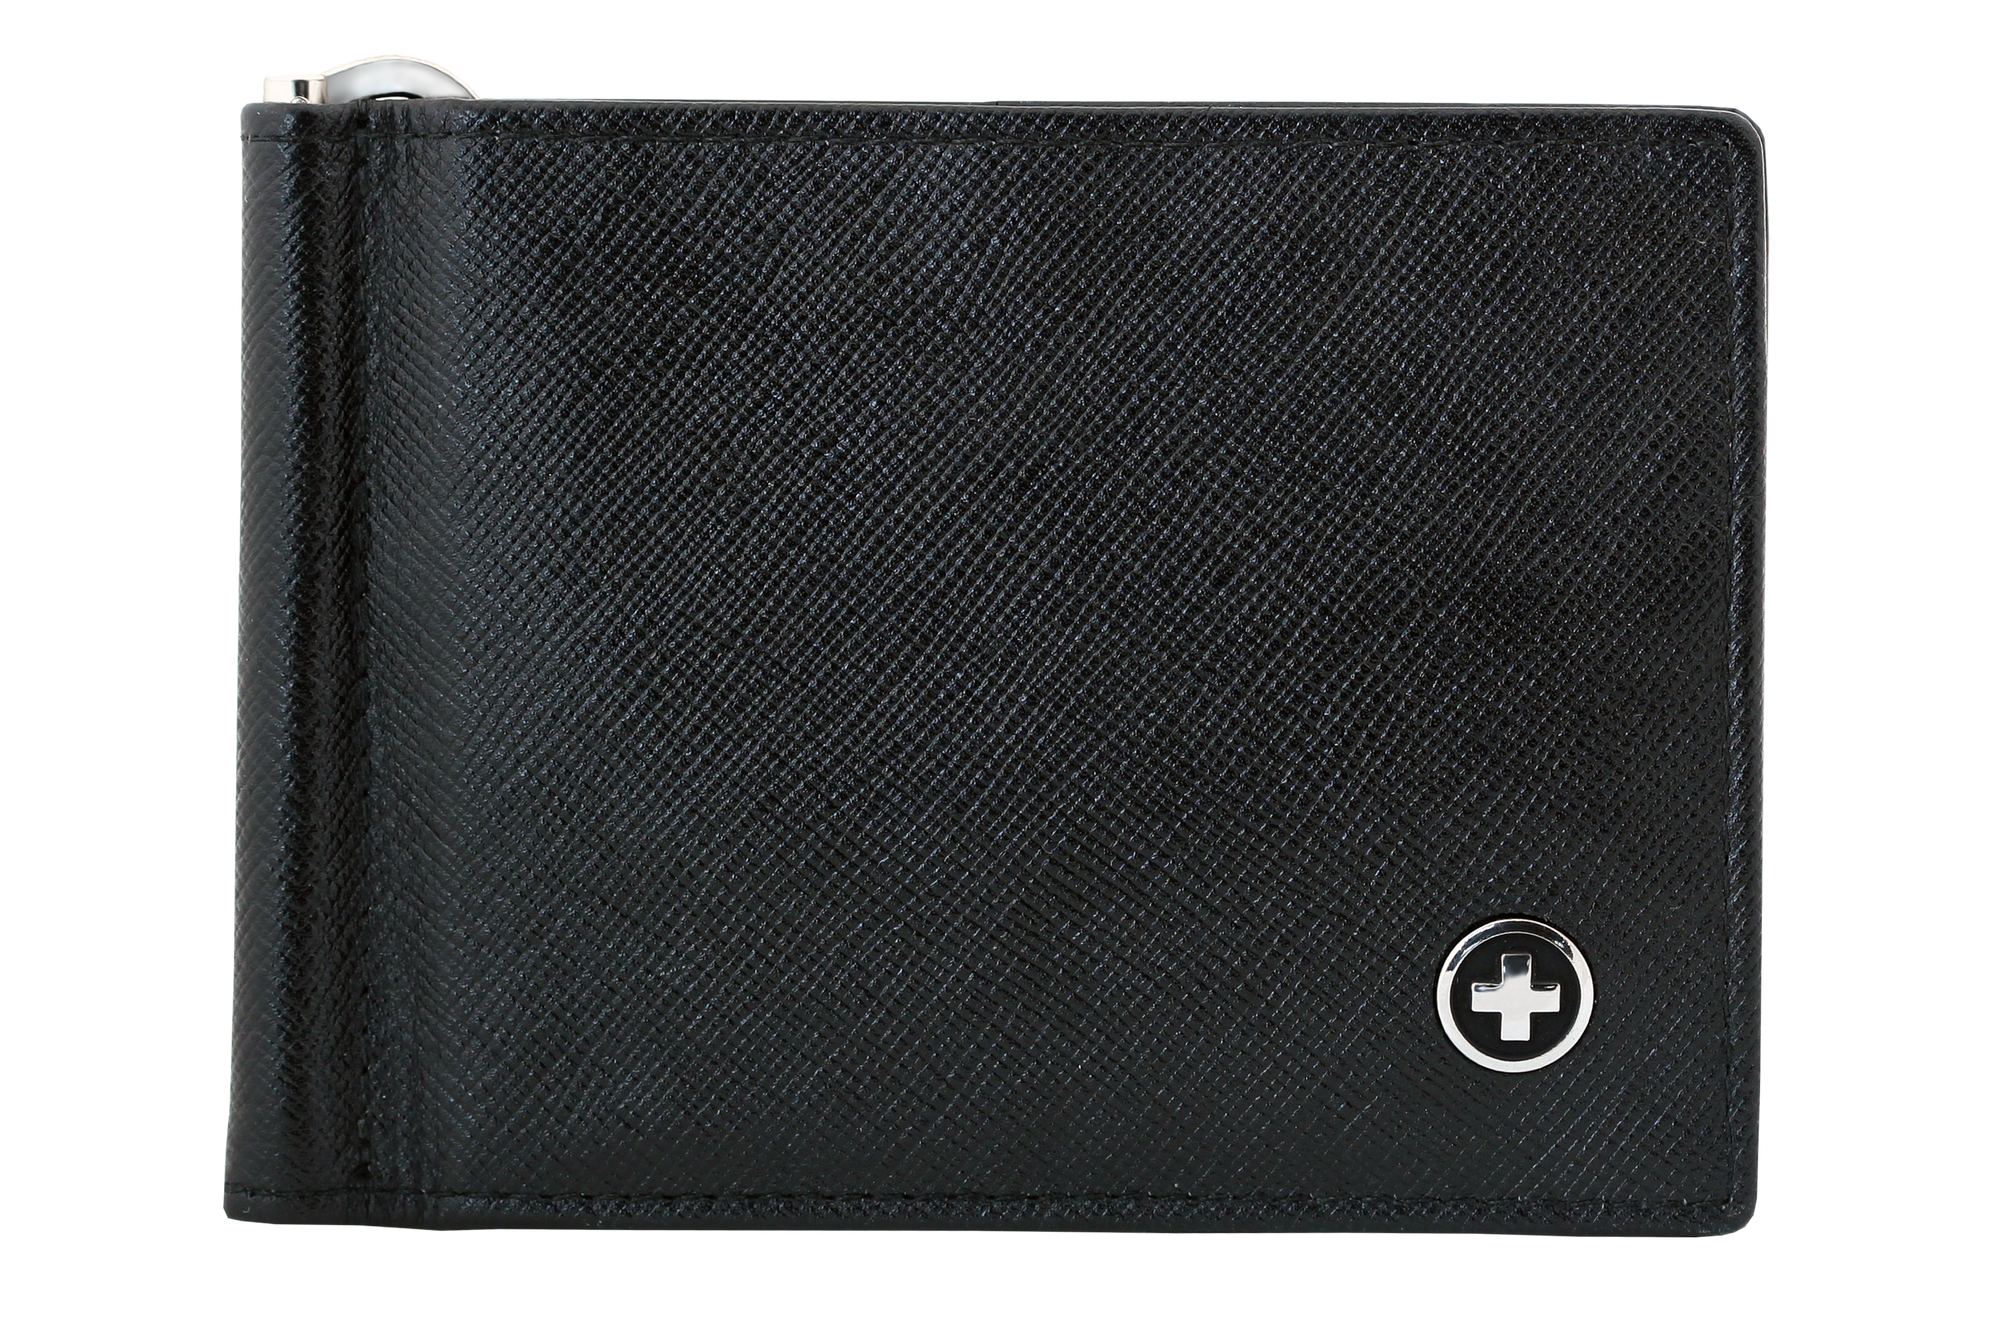 SWISS WALLET Leather Billfold Clip, Black Saffiano